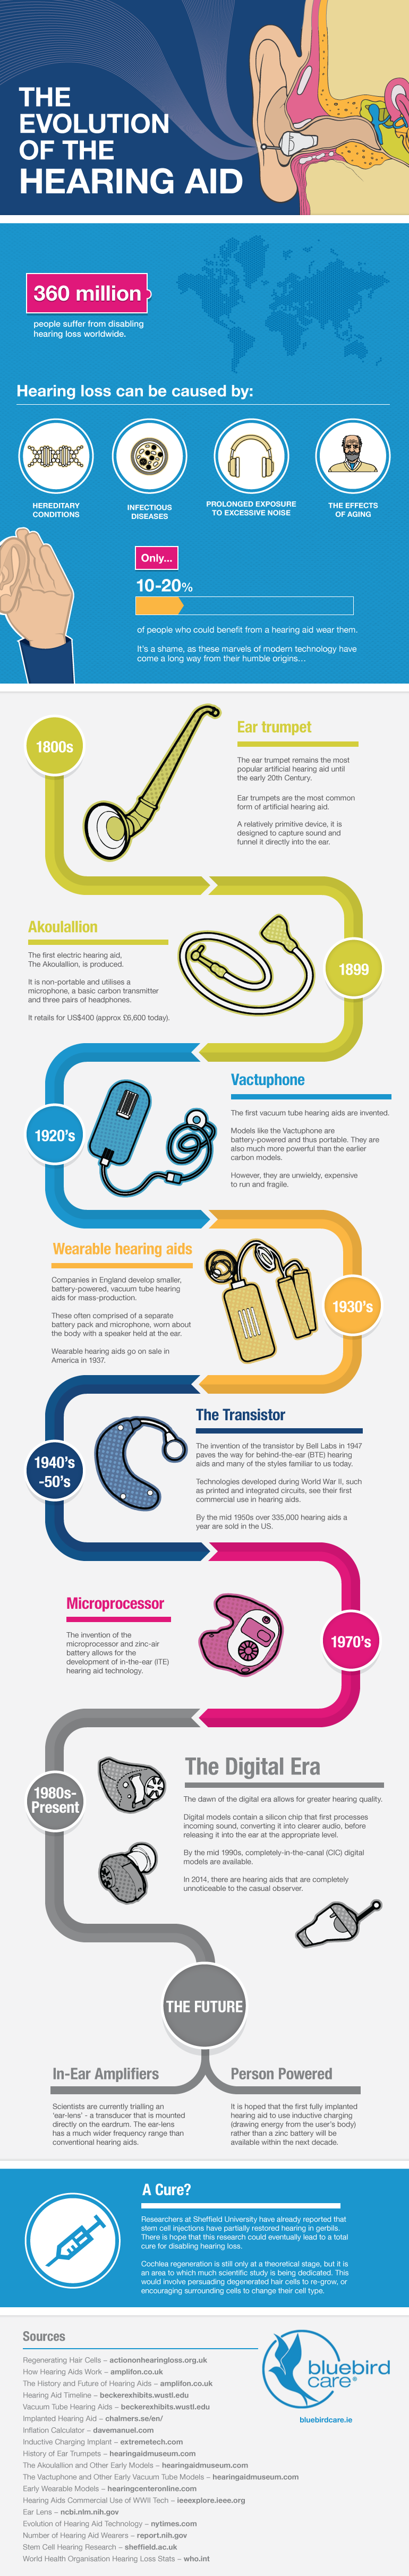 the-evolution-of-the-hearing-aid